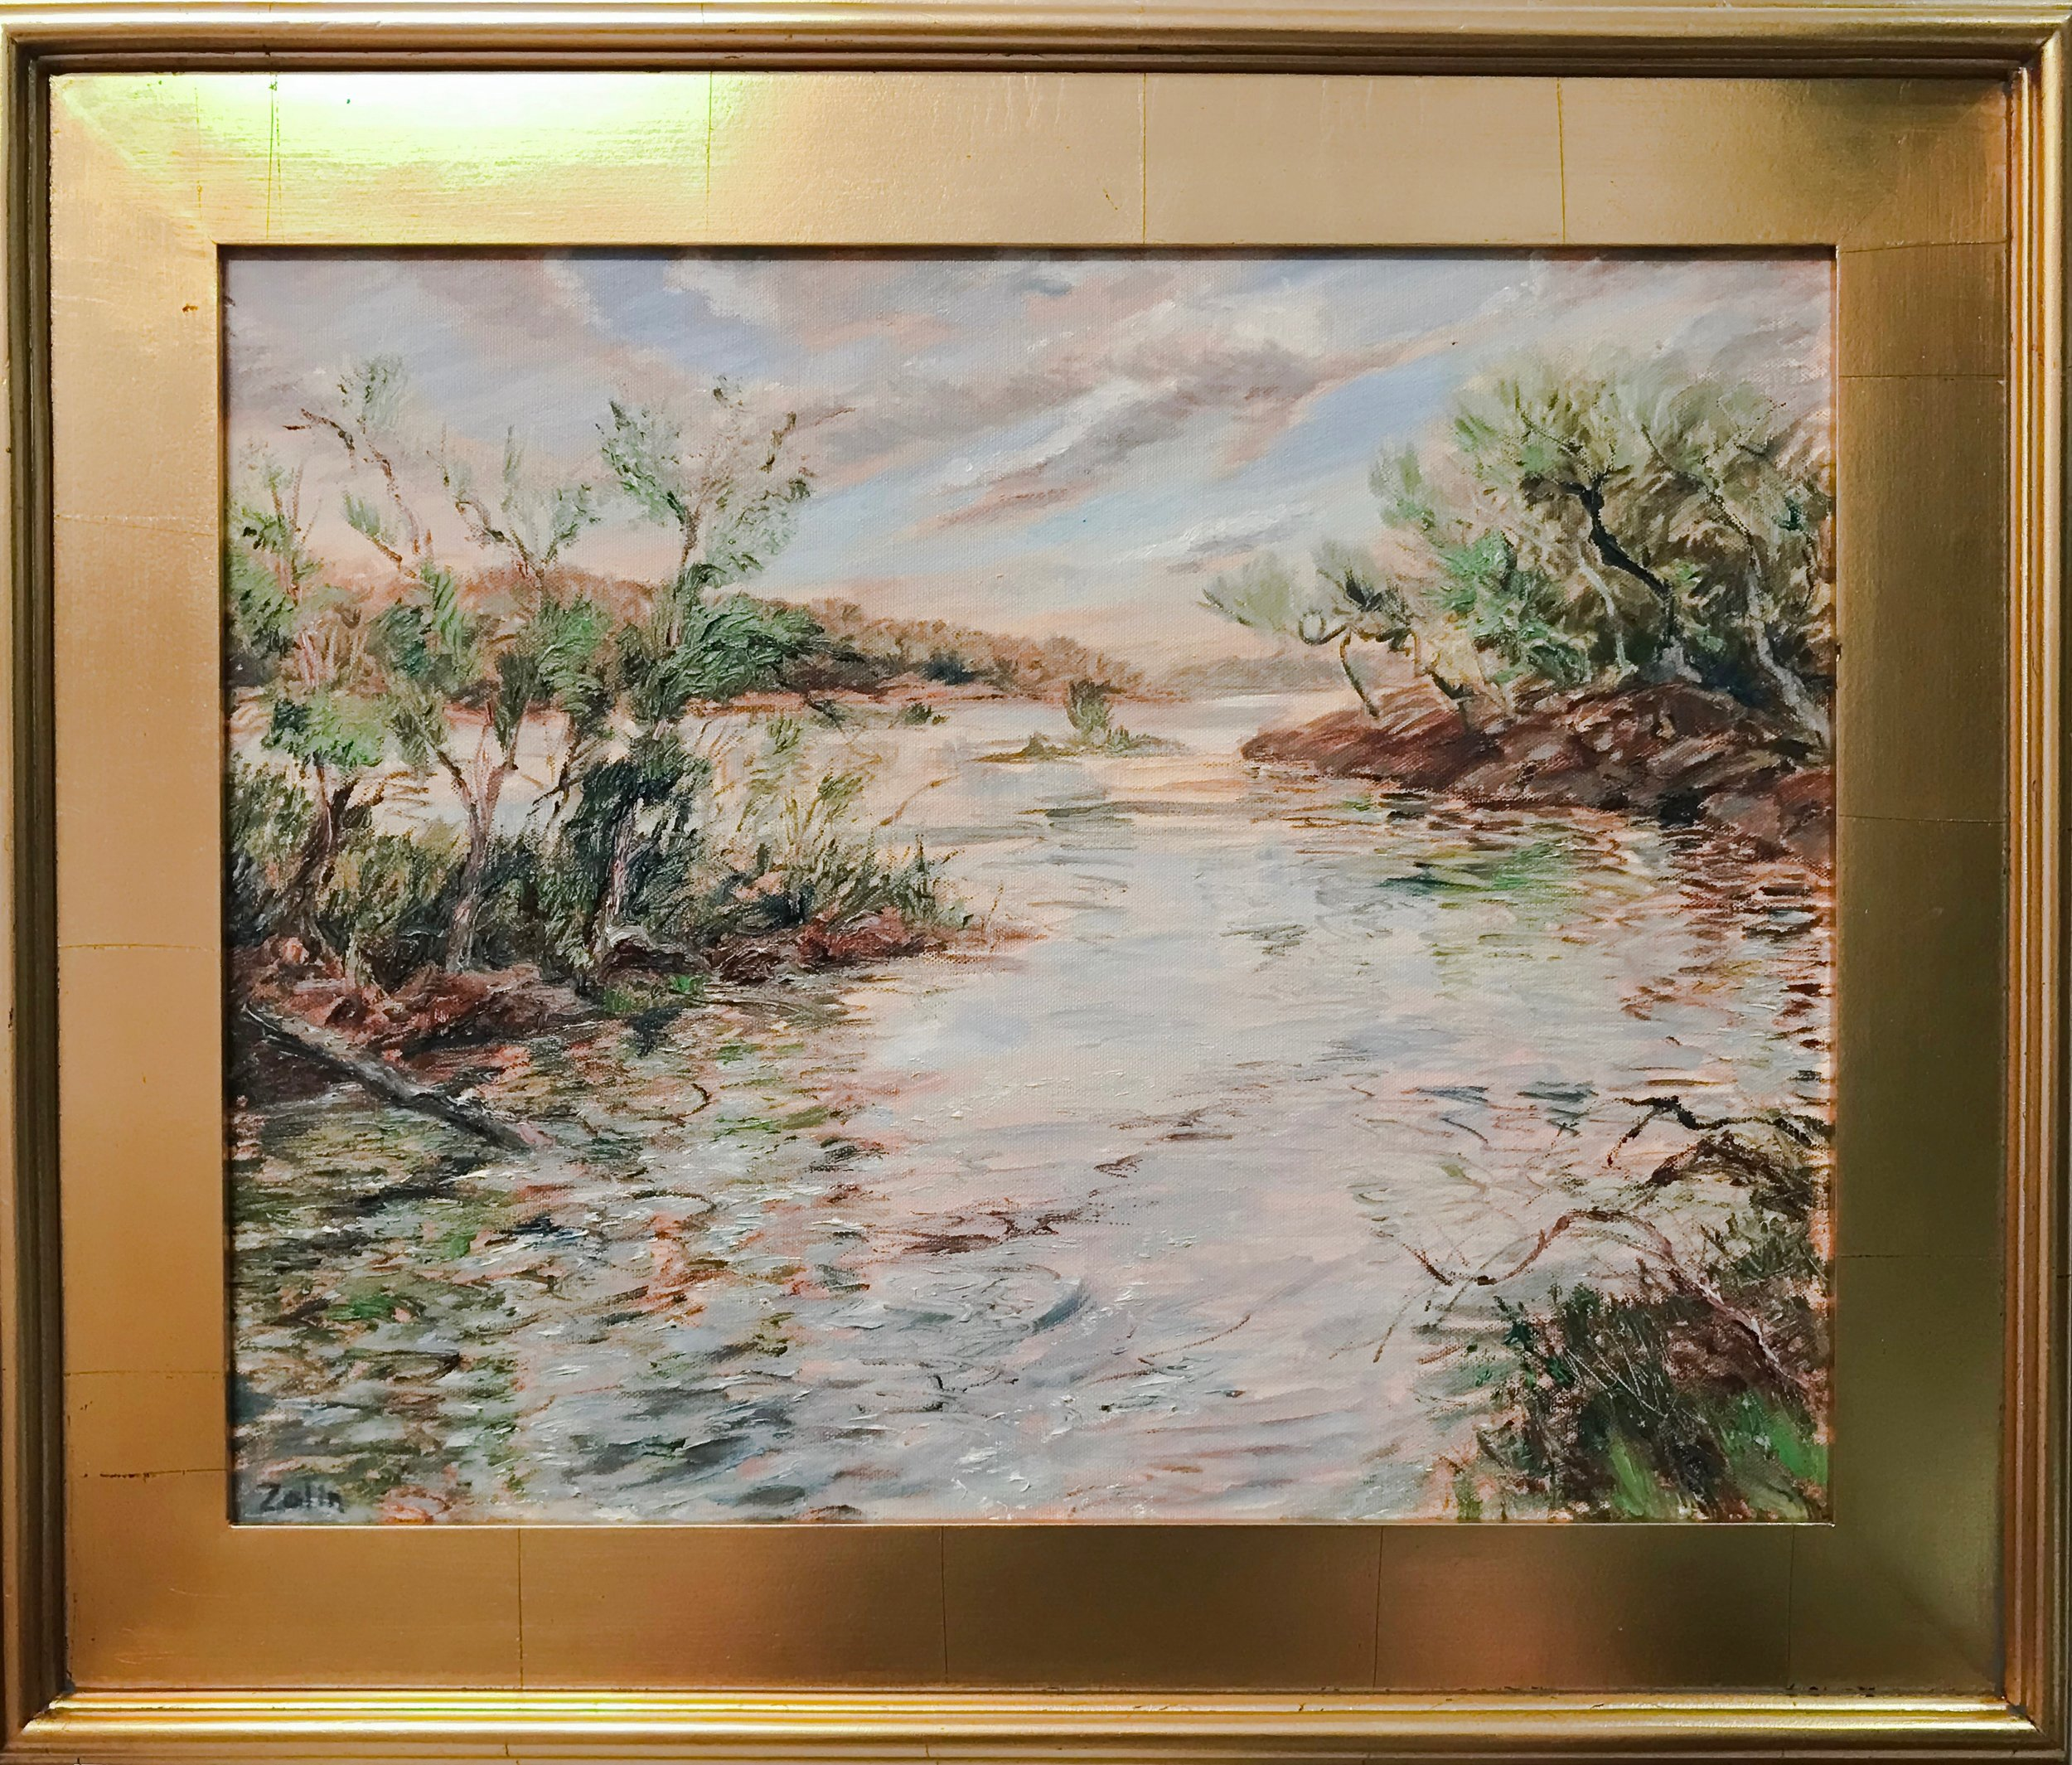 Steve Zolin   Pattaconk Lake   2018  Oil on canvas  Signed by the artist, lower left  16 x 20 inches  Framed: 22 x 26 inches